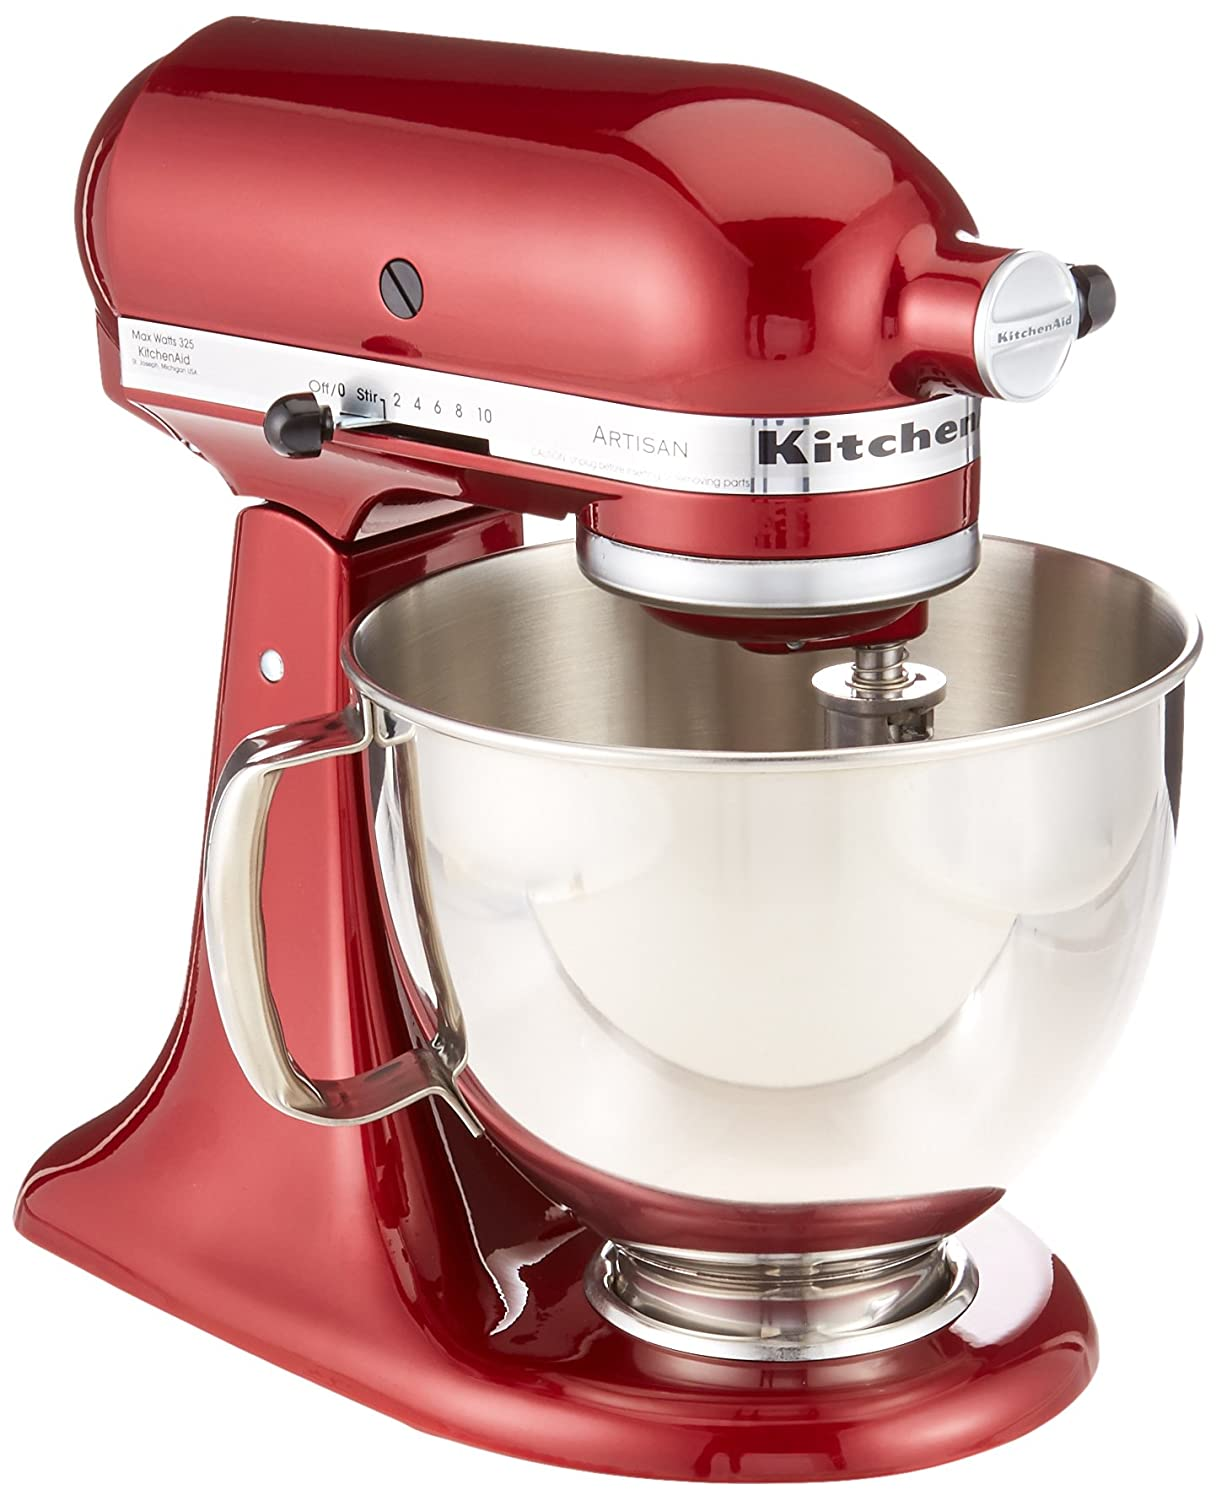 Amazon.com: KitchenAid RRK150GD Artisan Series Stand Mixer, 5 ...